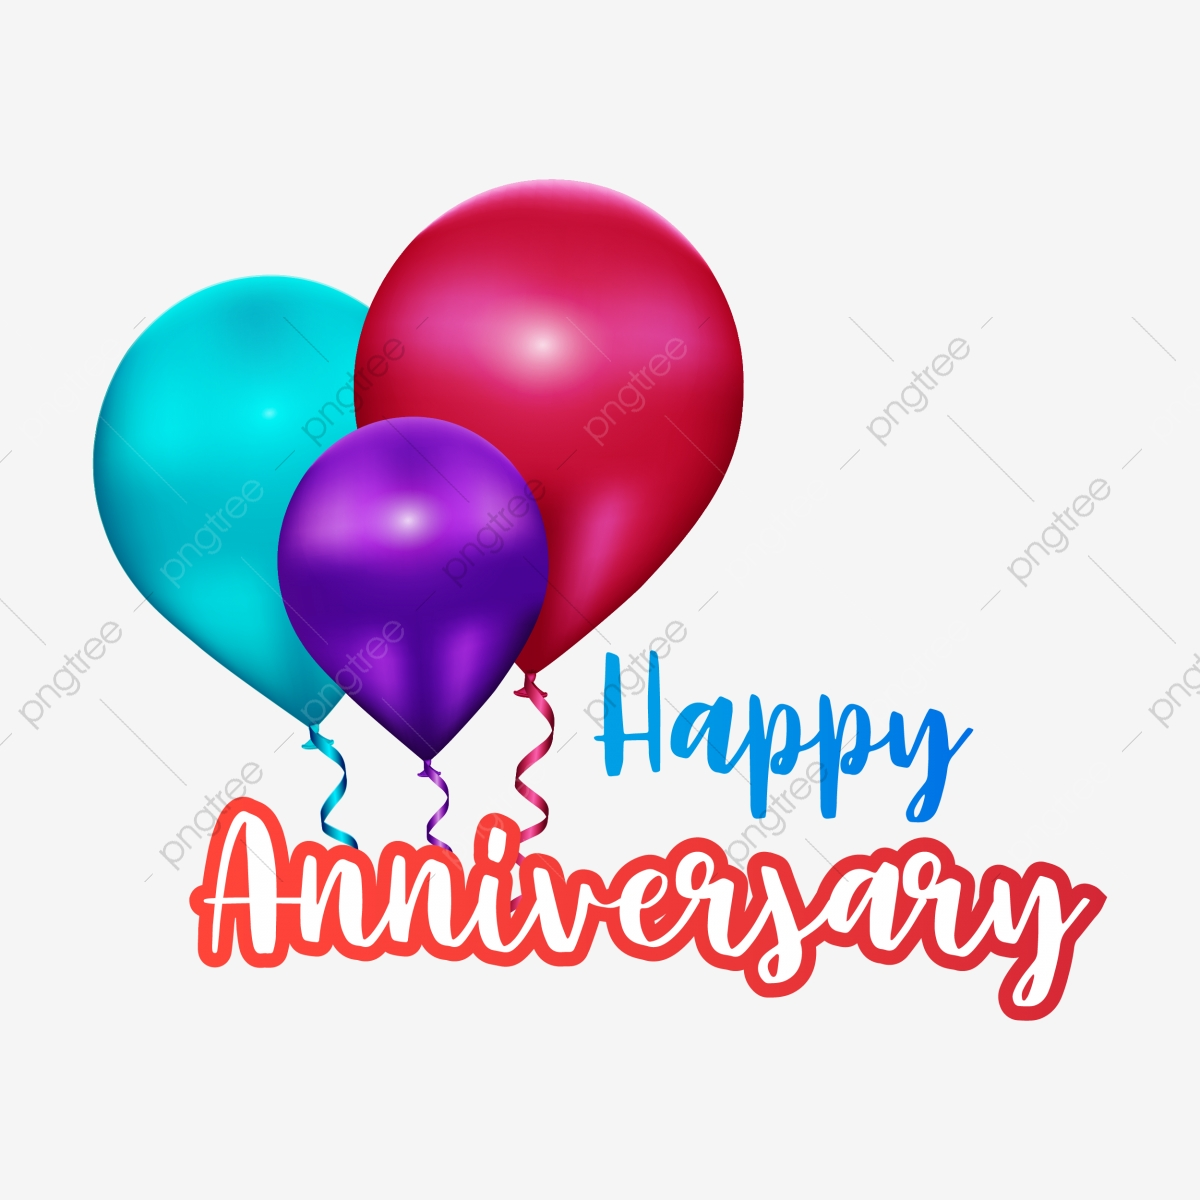 Happy Anniversary Png Images Vector And Psd Files Free Download On Pngtree